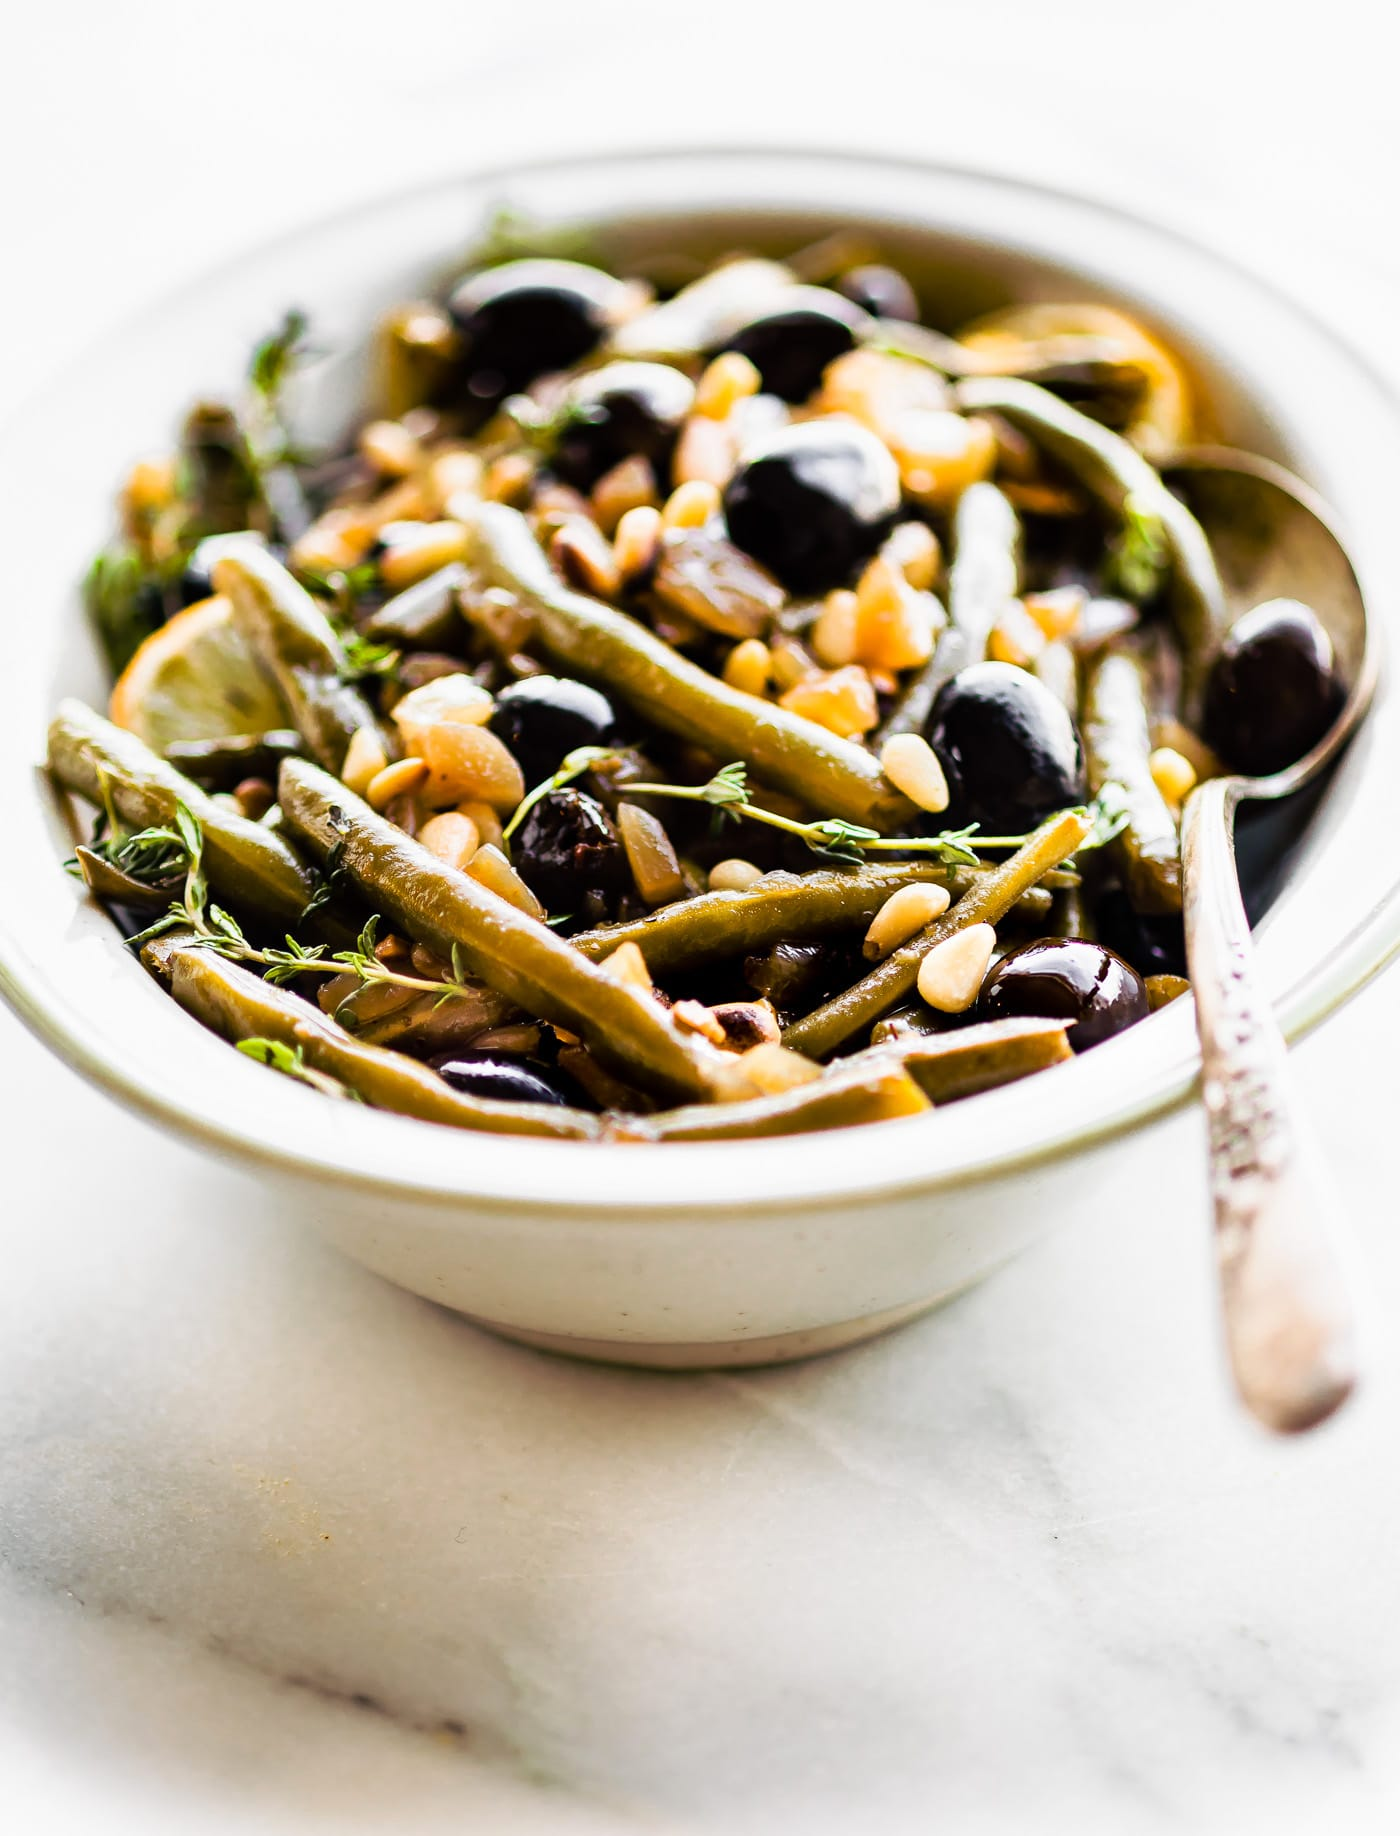 Balsamic Olive-Oil braised green Beans with a quick, easy, and healthy side dish. For this braised green beans recipe, fresh green beans are seasoned with thyme, then braised with balsamic vinegar, olive-oil, black olives, and topped with toasted pine nuts. Paleo, whole 30 and vegan friendly.